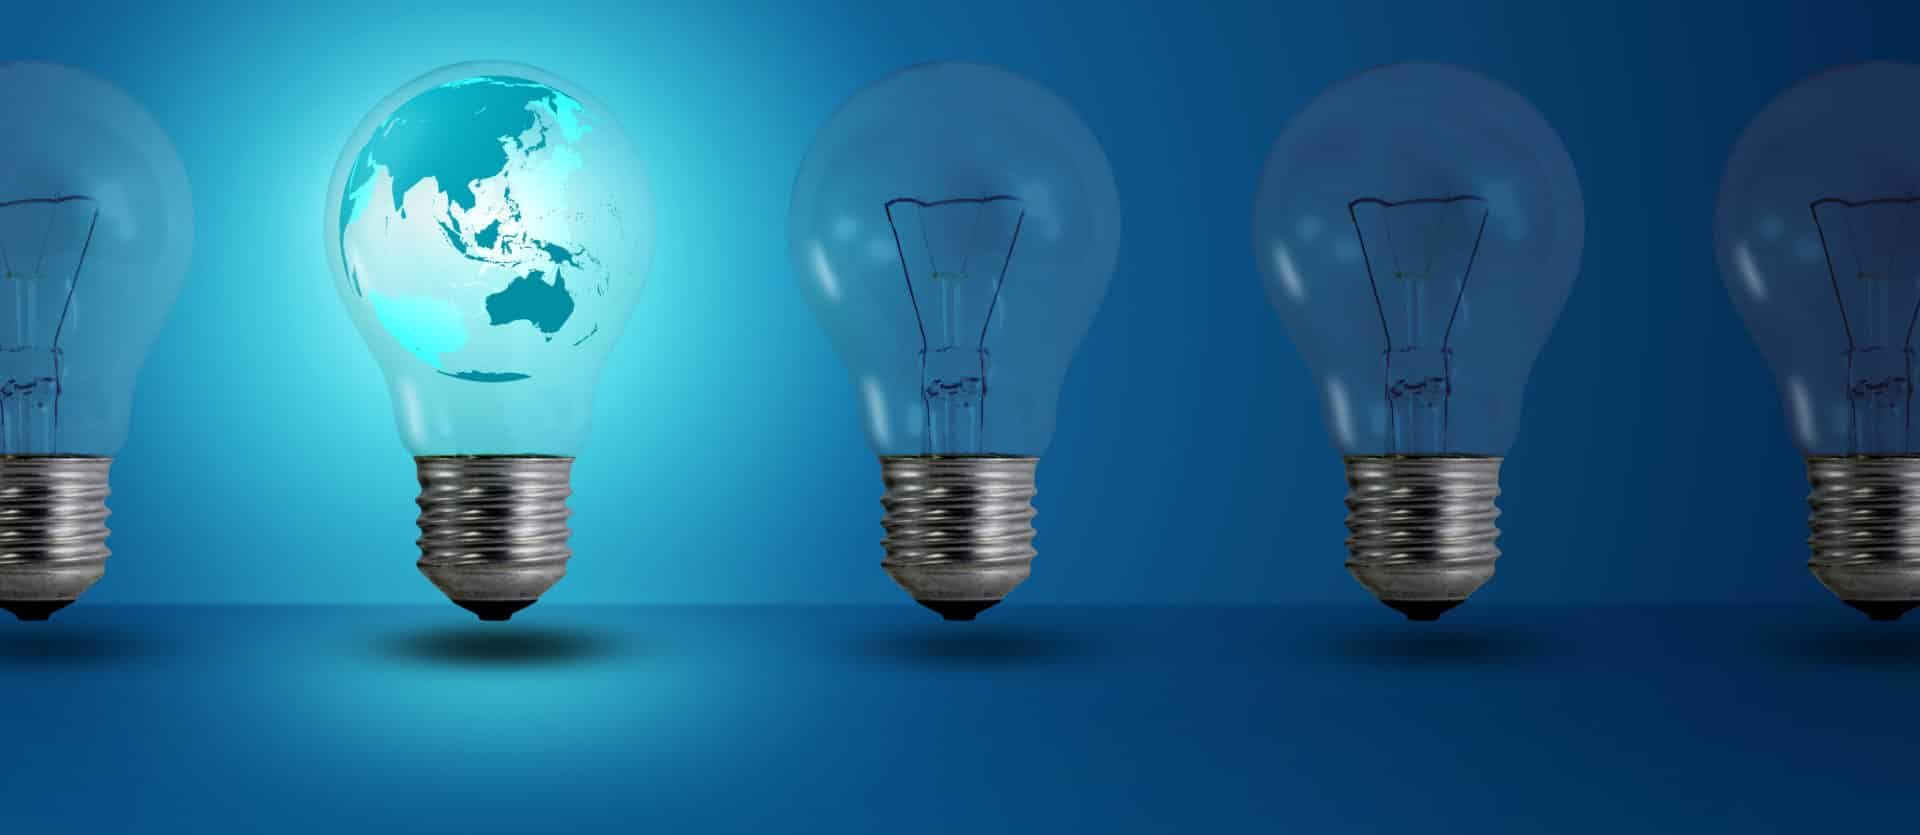 map inside glow among other light bulb on a blue background